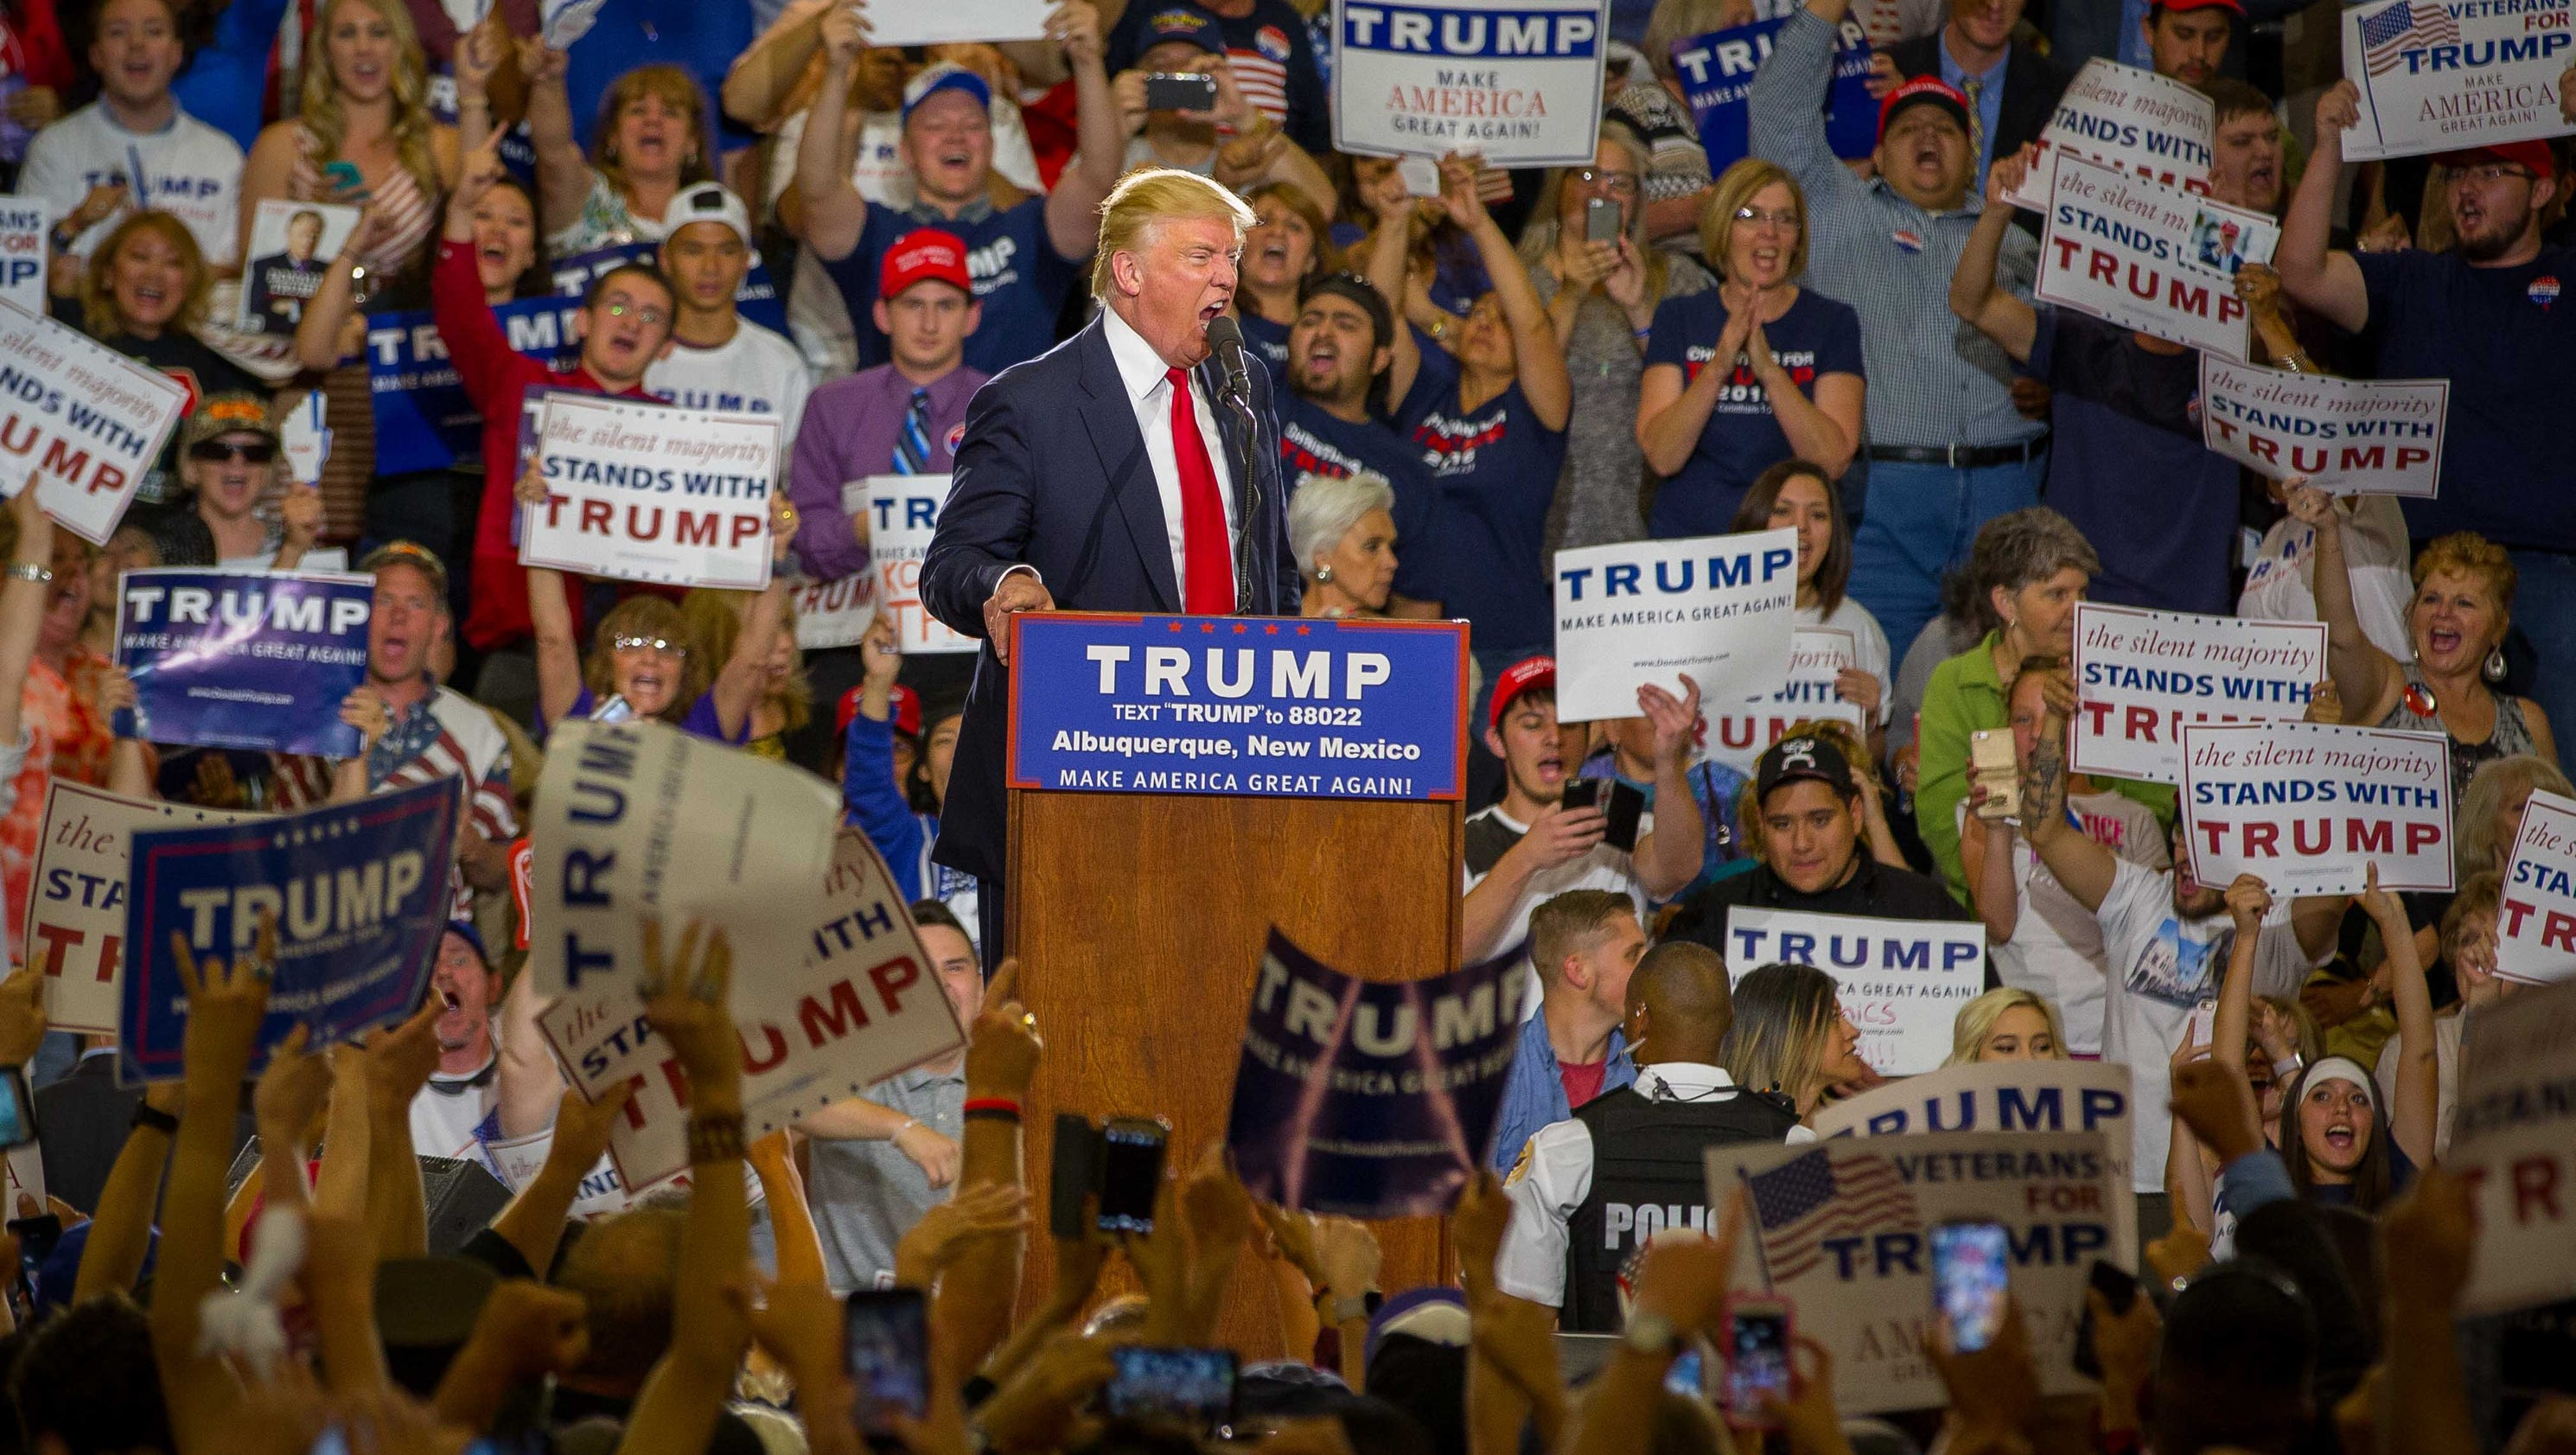 Trump, Bill Clinton rally supporters in New Mexico